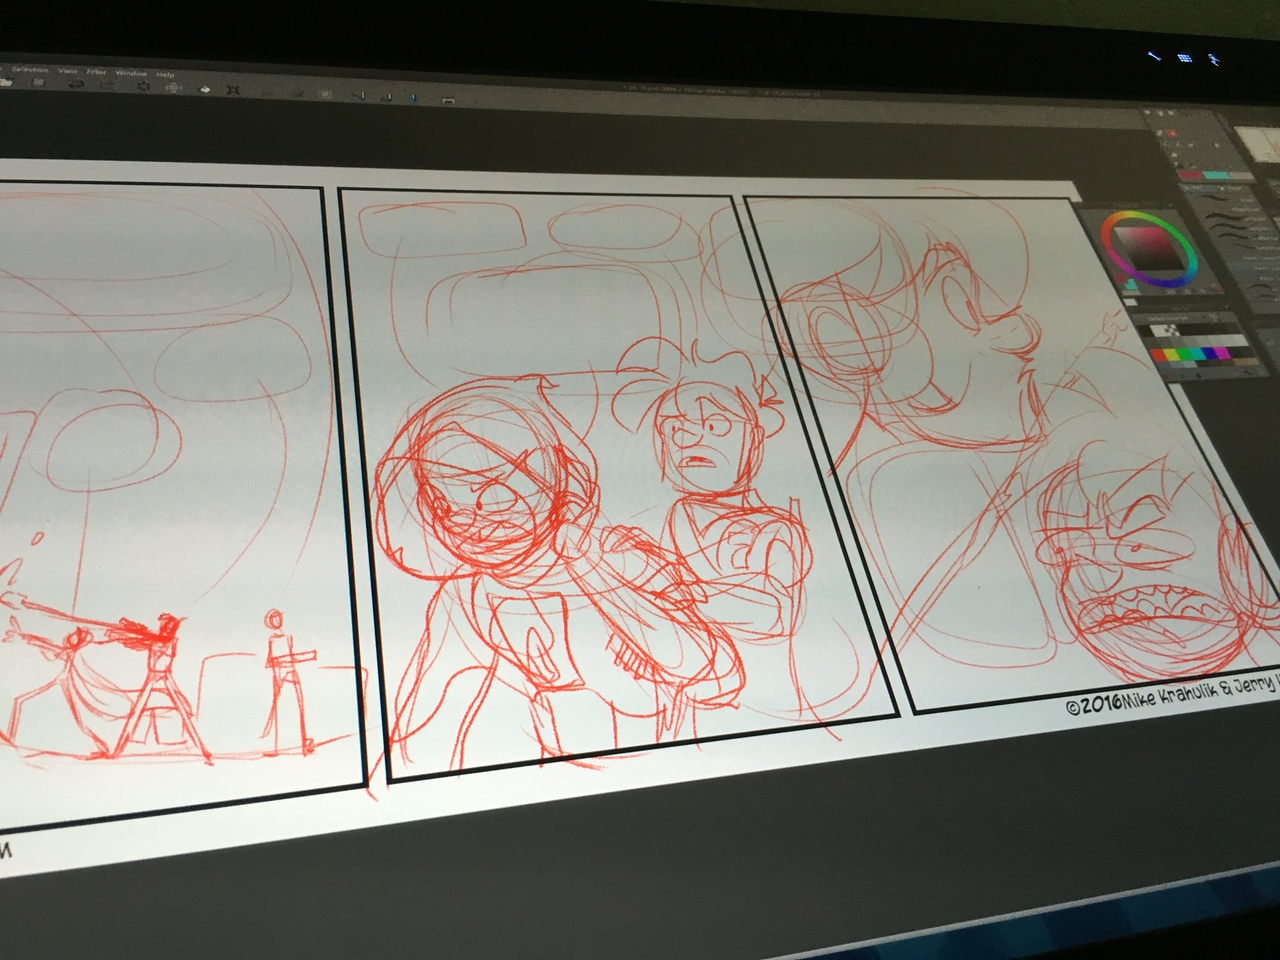 Working on another comic